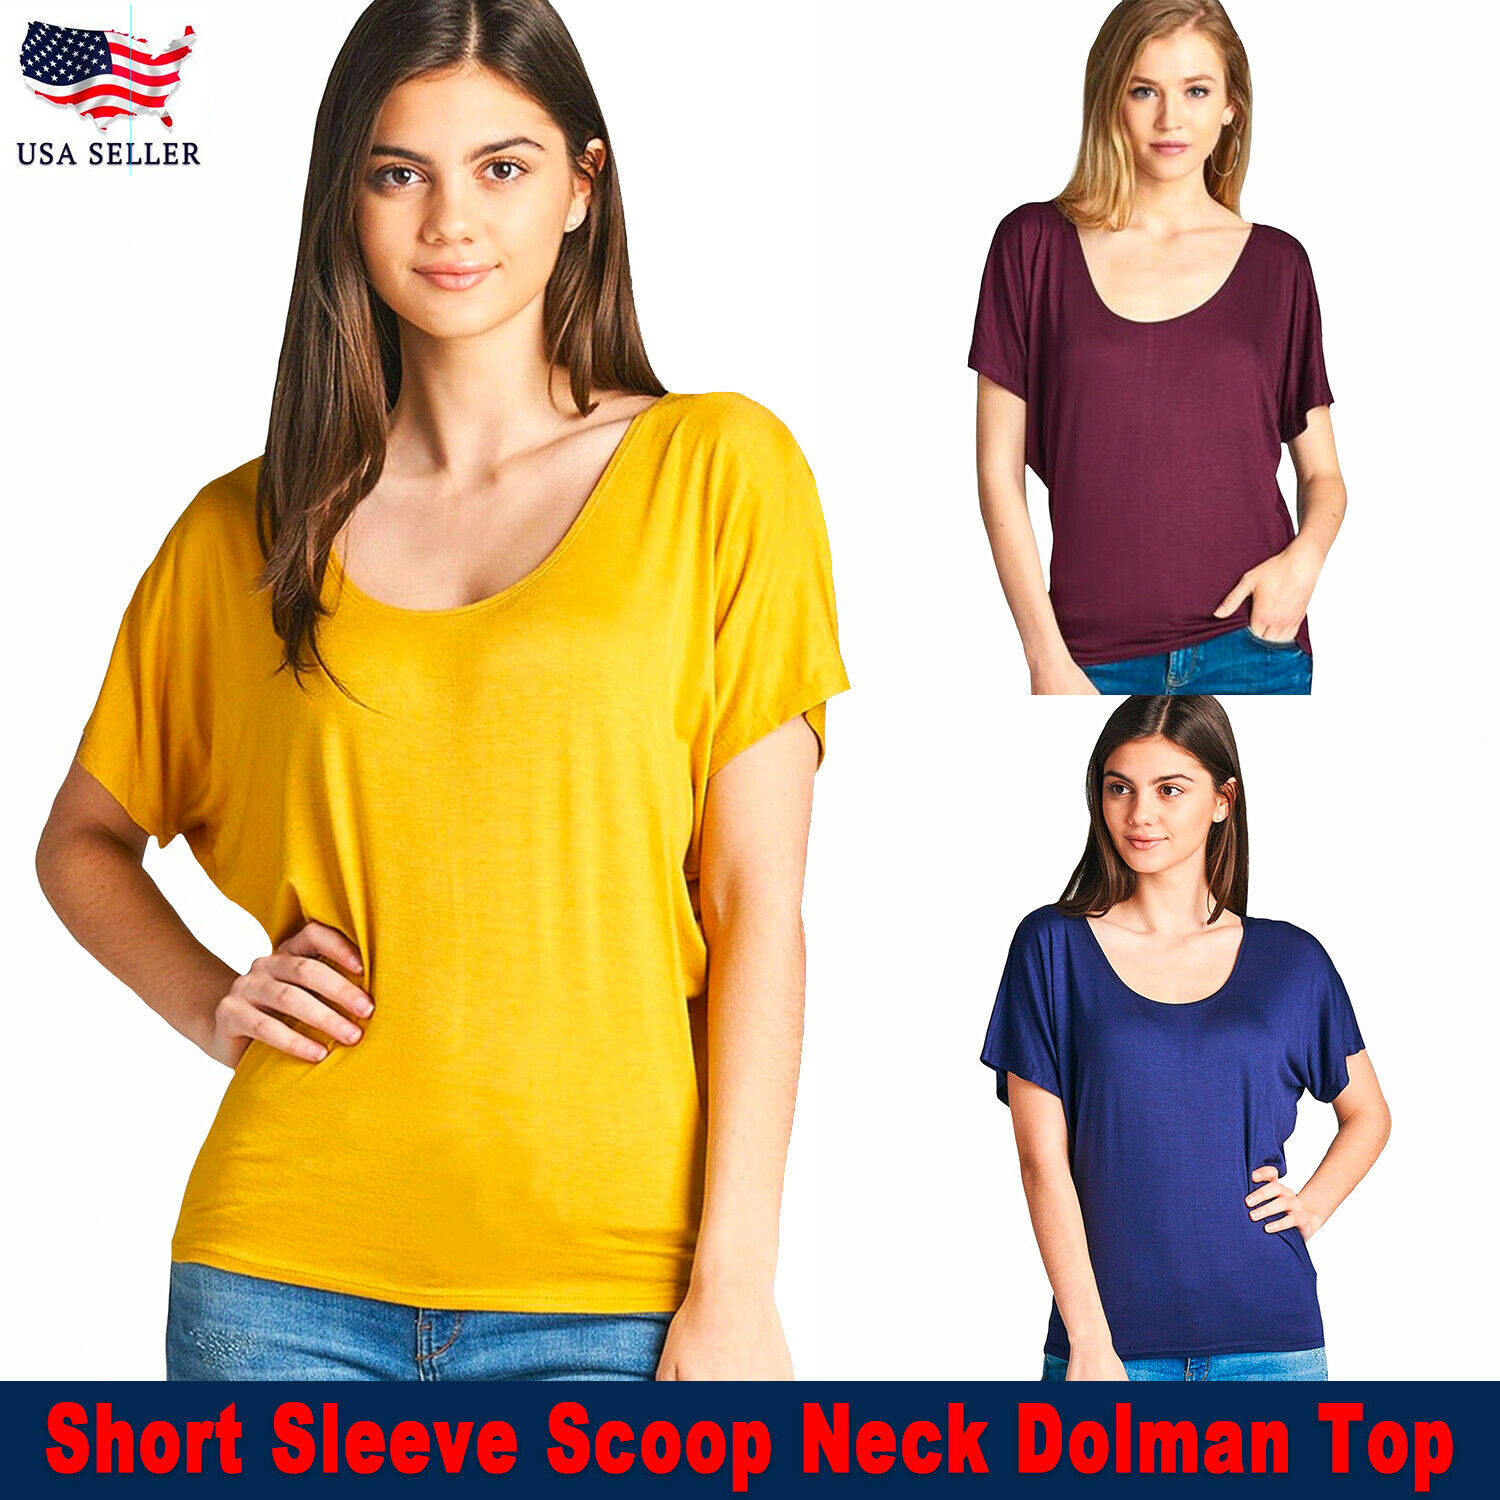 USA New Women Active Short Sleeve Scoop Neck Dolman Tops Solid Color Size S,M,L